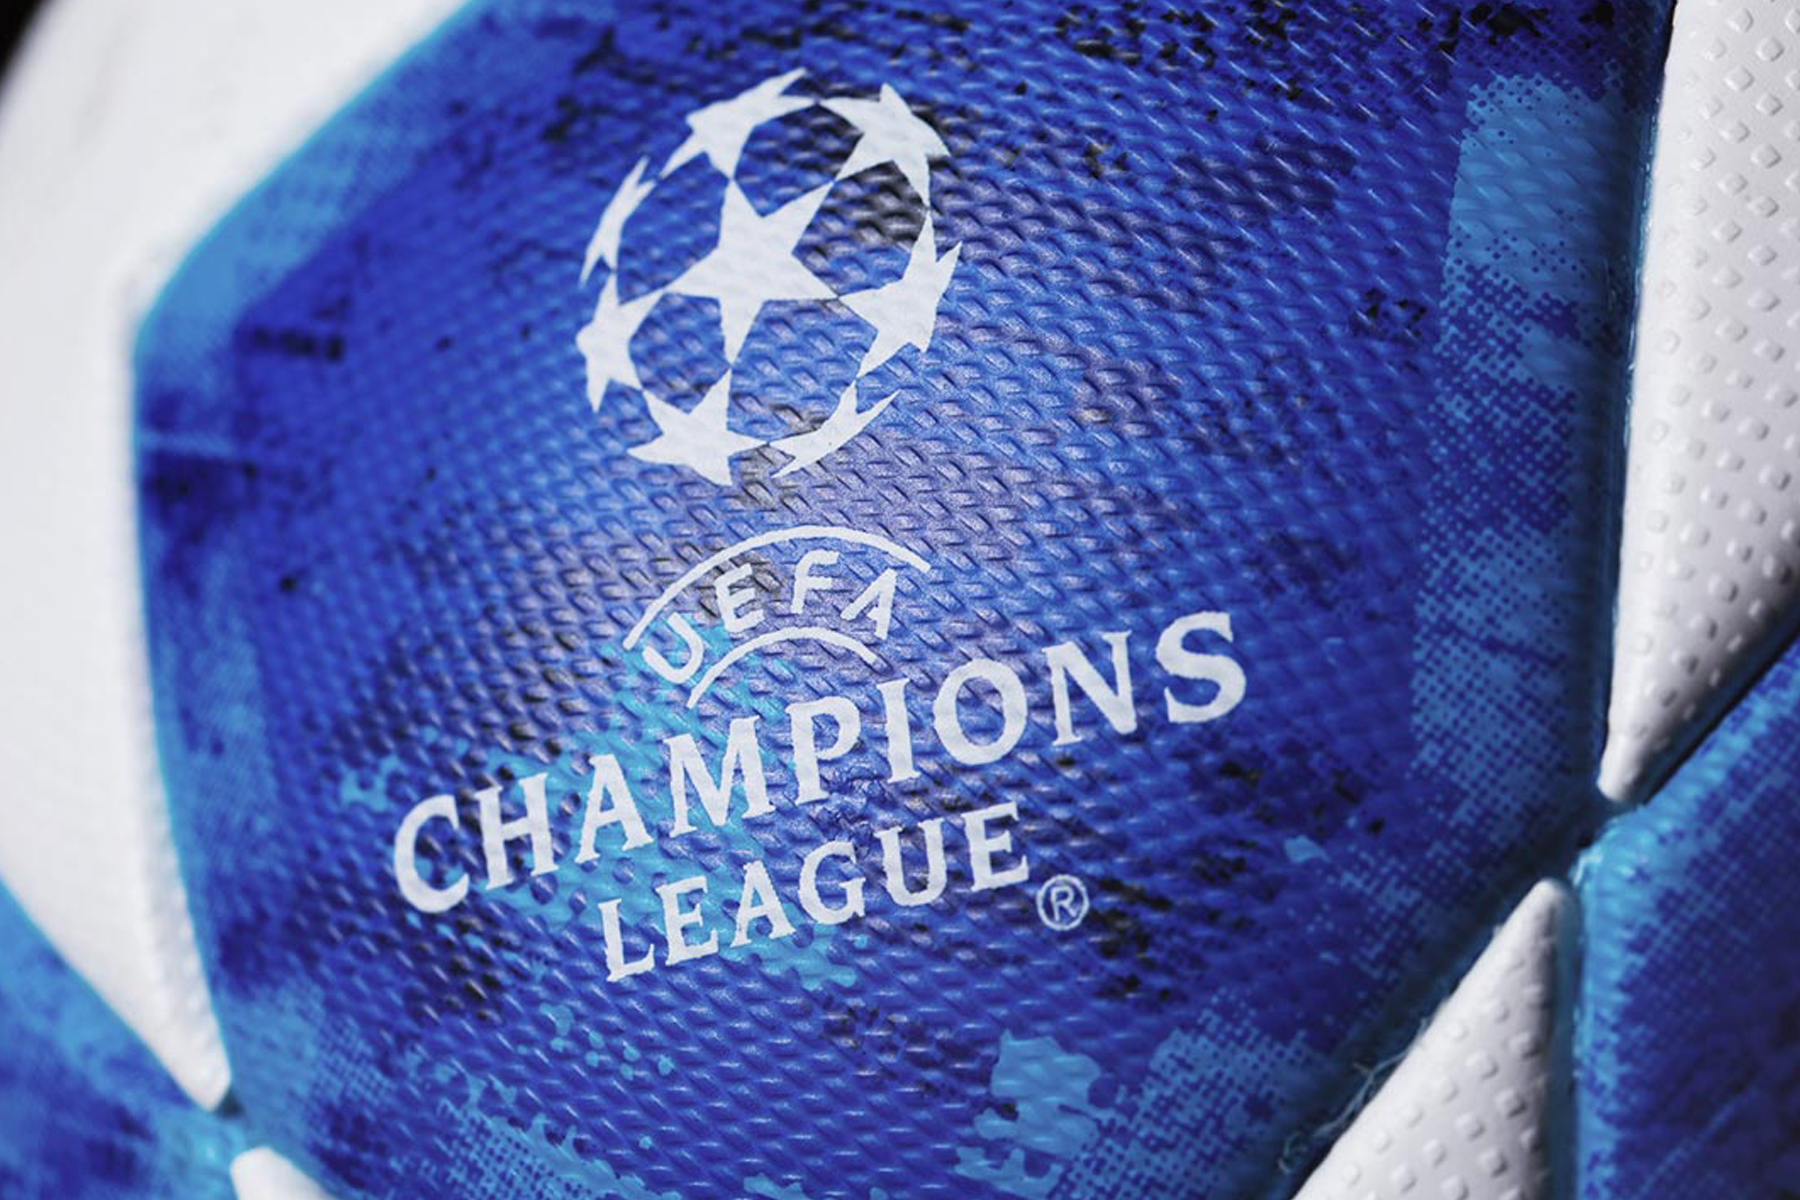 ¡Bendita Champions League!